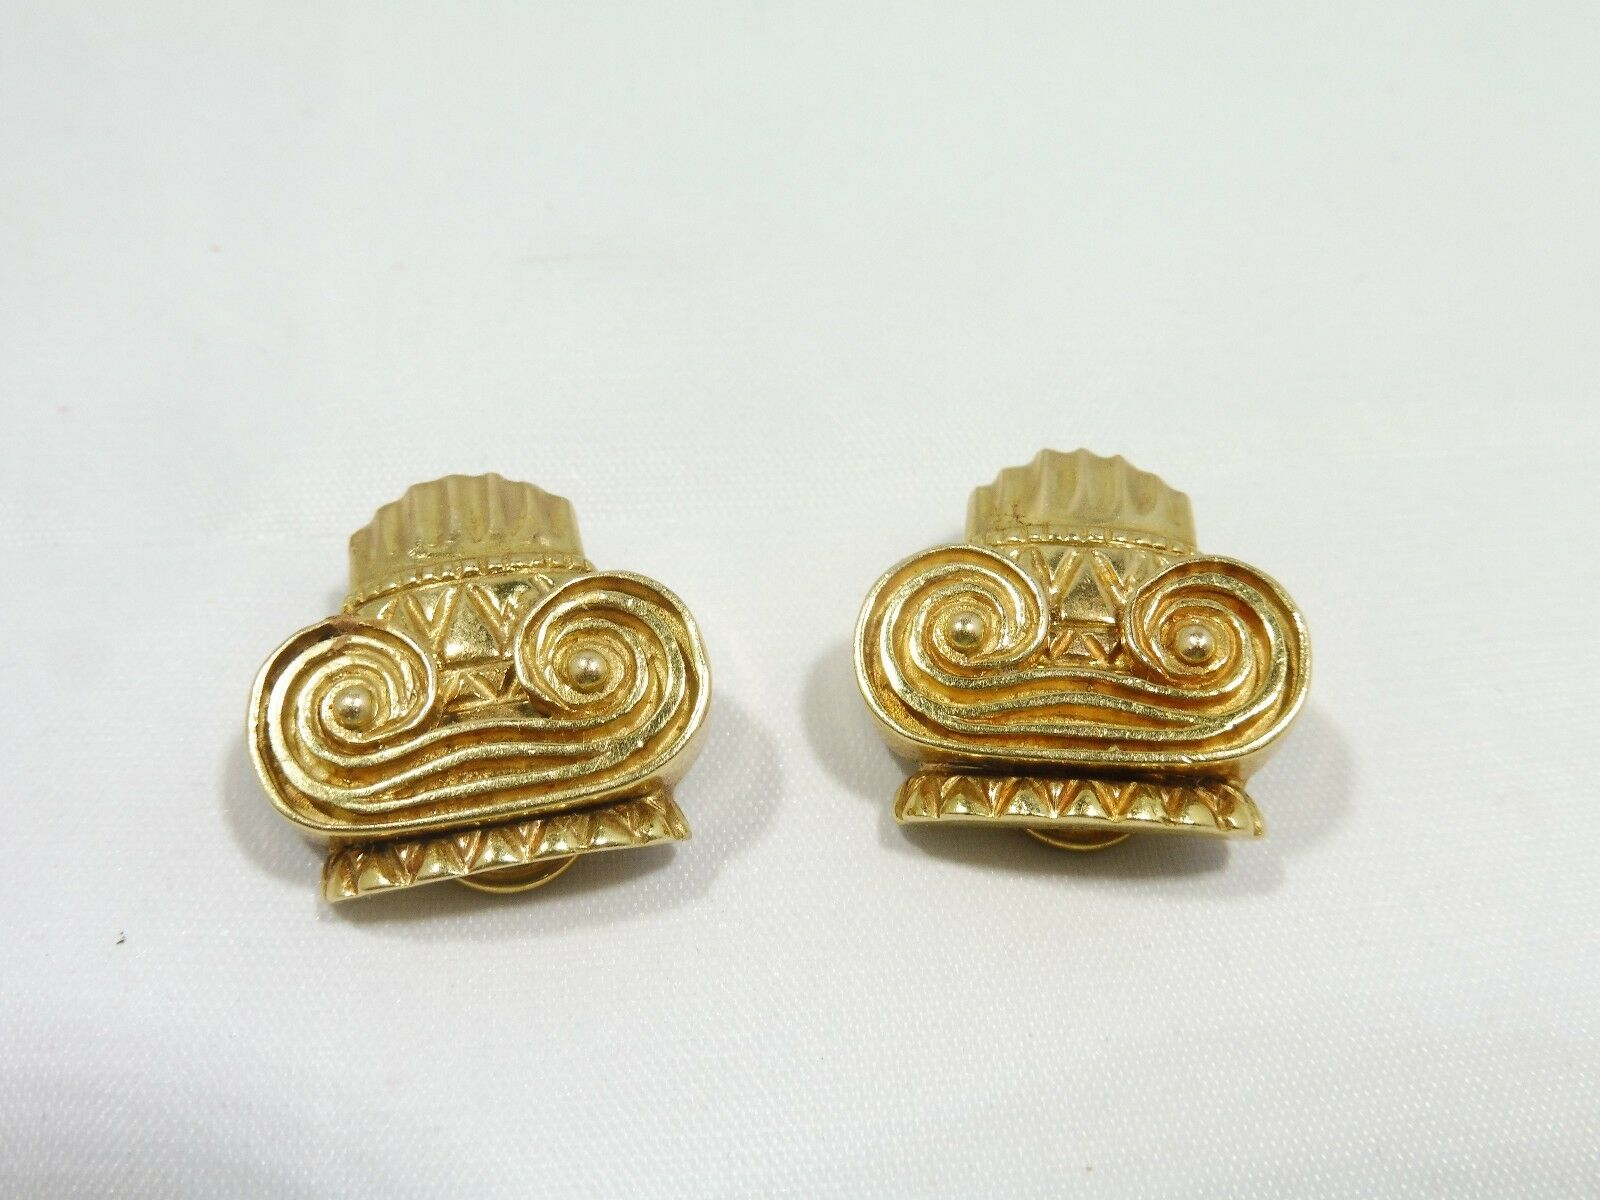 VINTAGE SUPERB NEOCLASSICAL 14K gold IONIC COLUMN EARRINGS 13.5 DWT